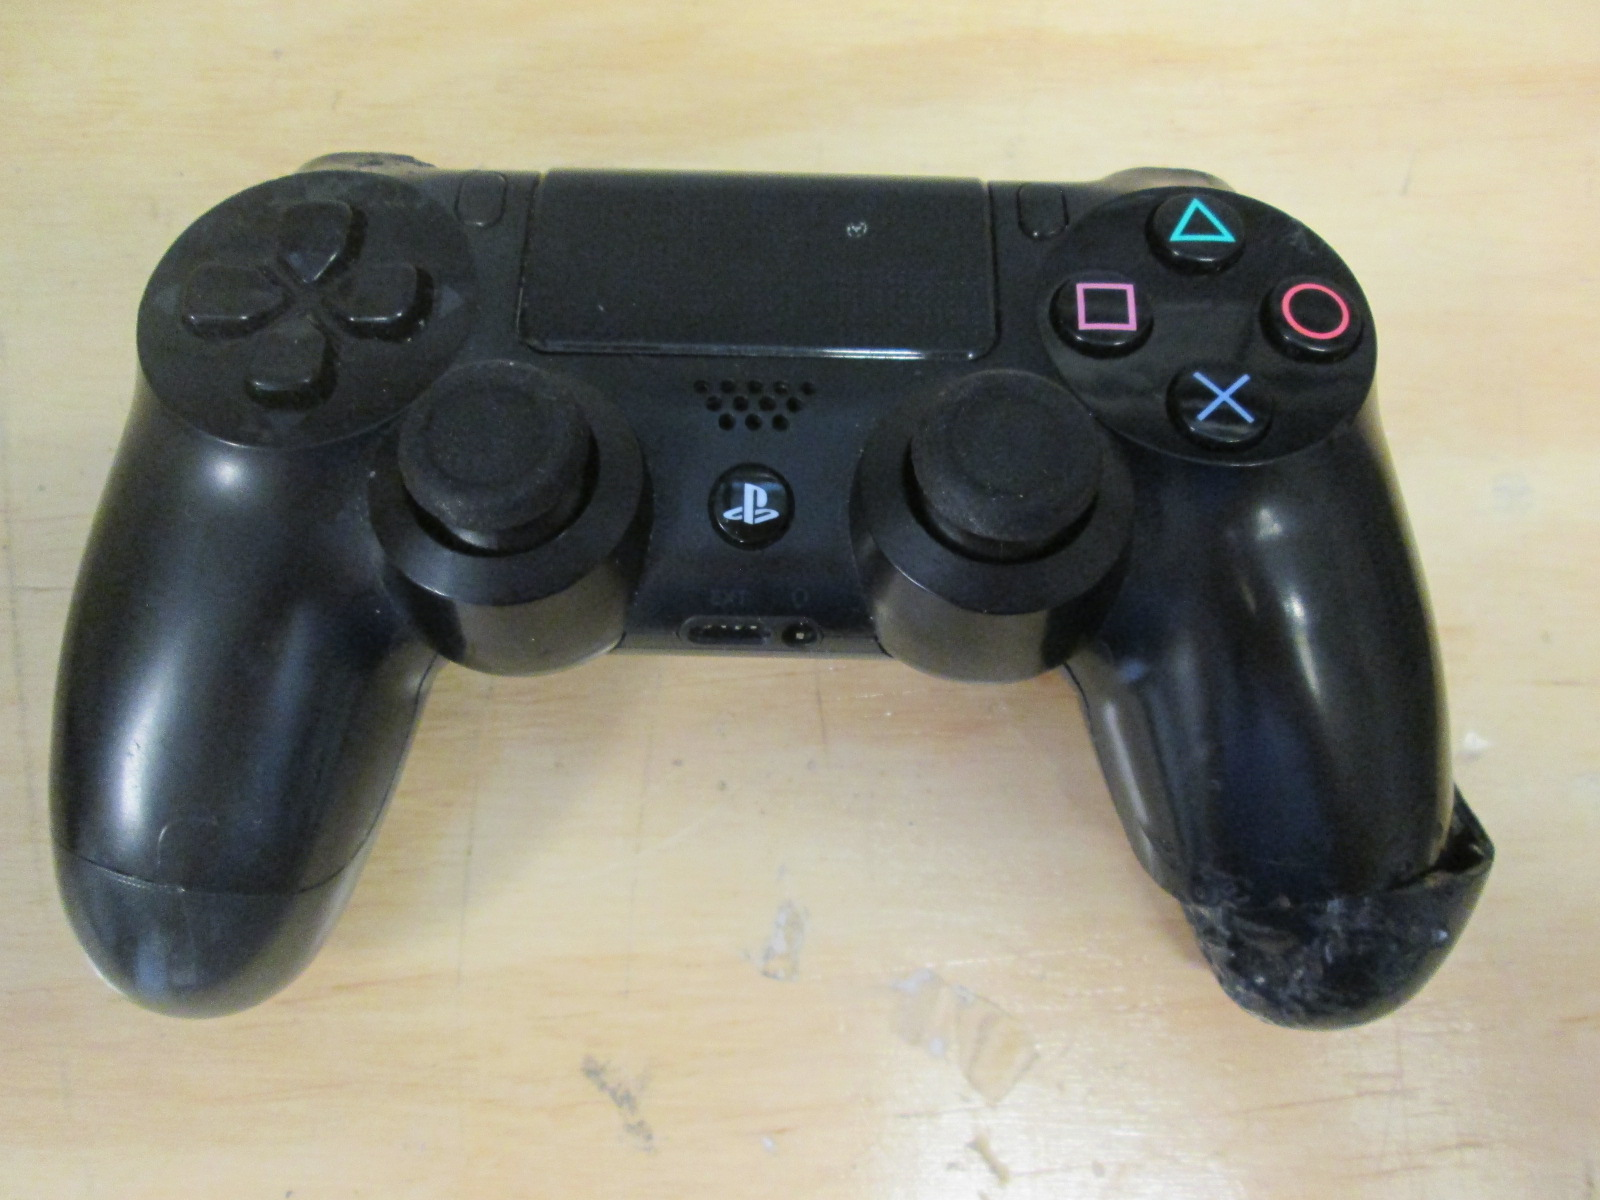 Broken Sony Dualshock 4 Wireless Controller For PlayStation 4 Jet